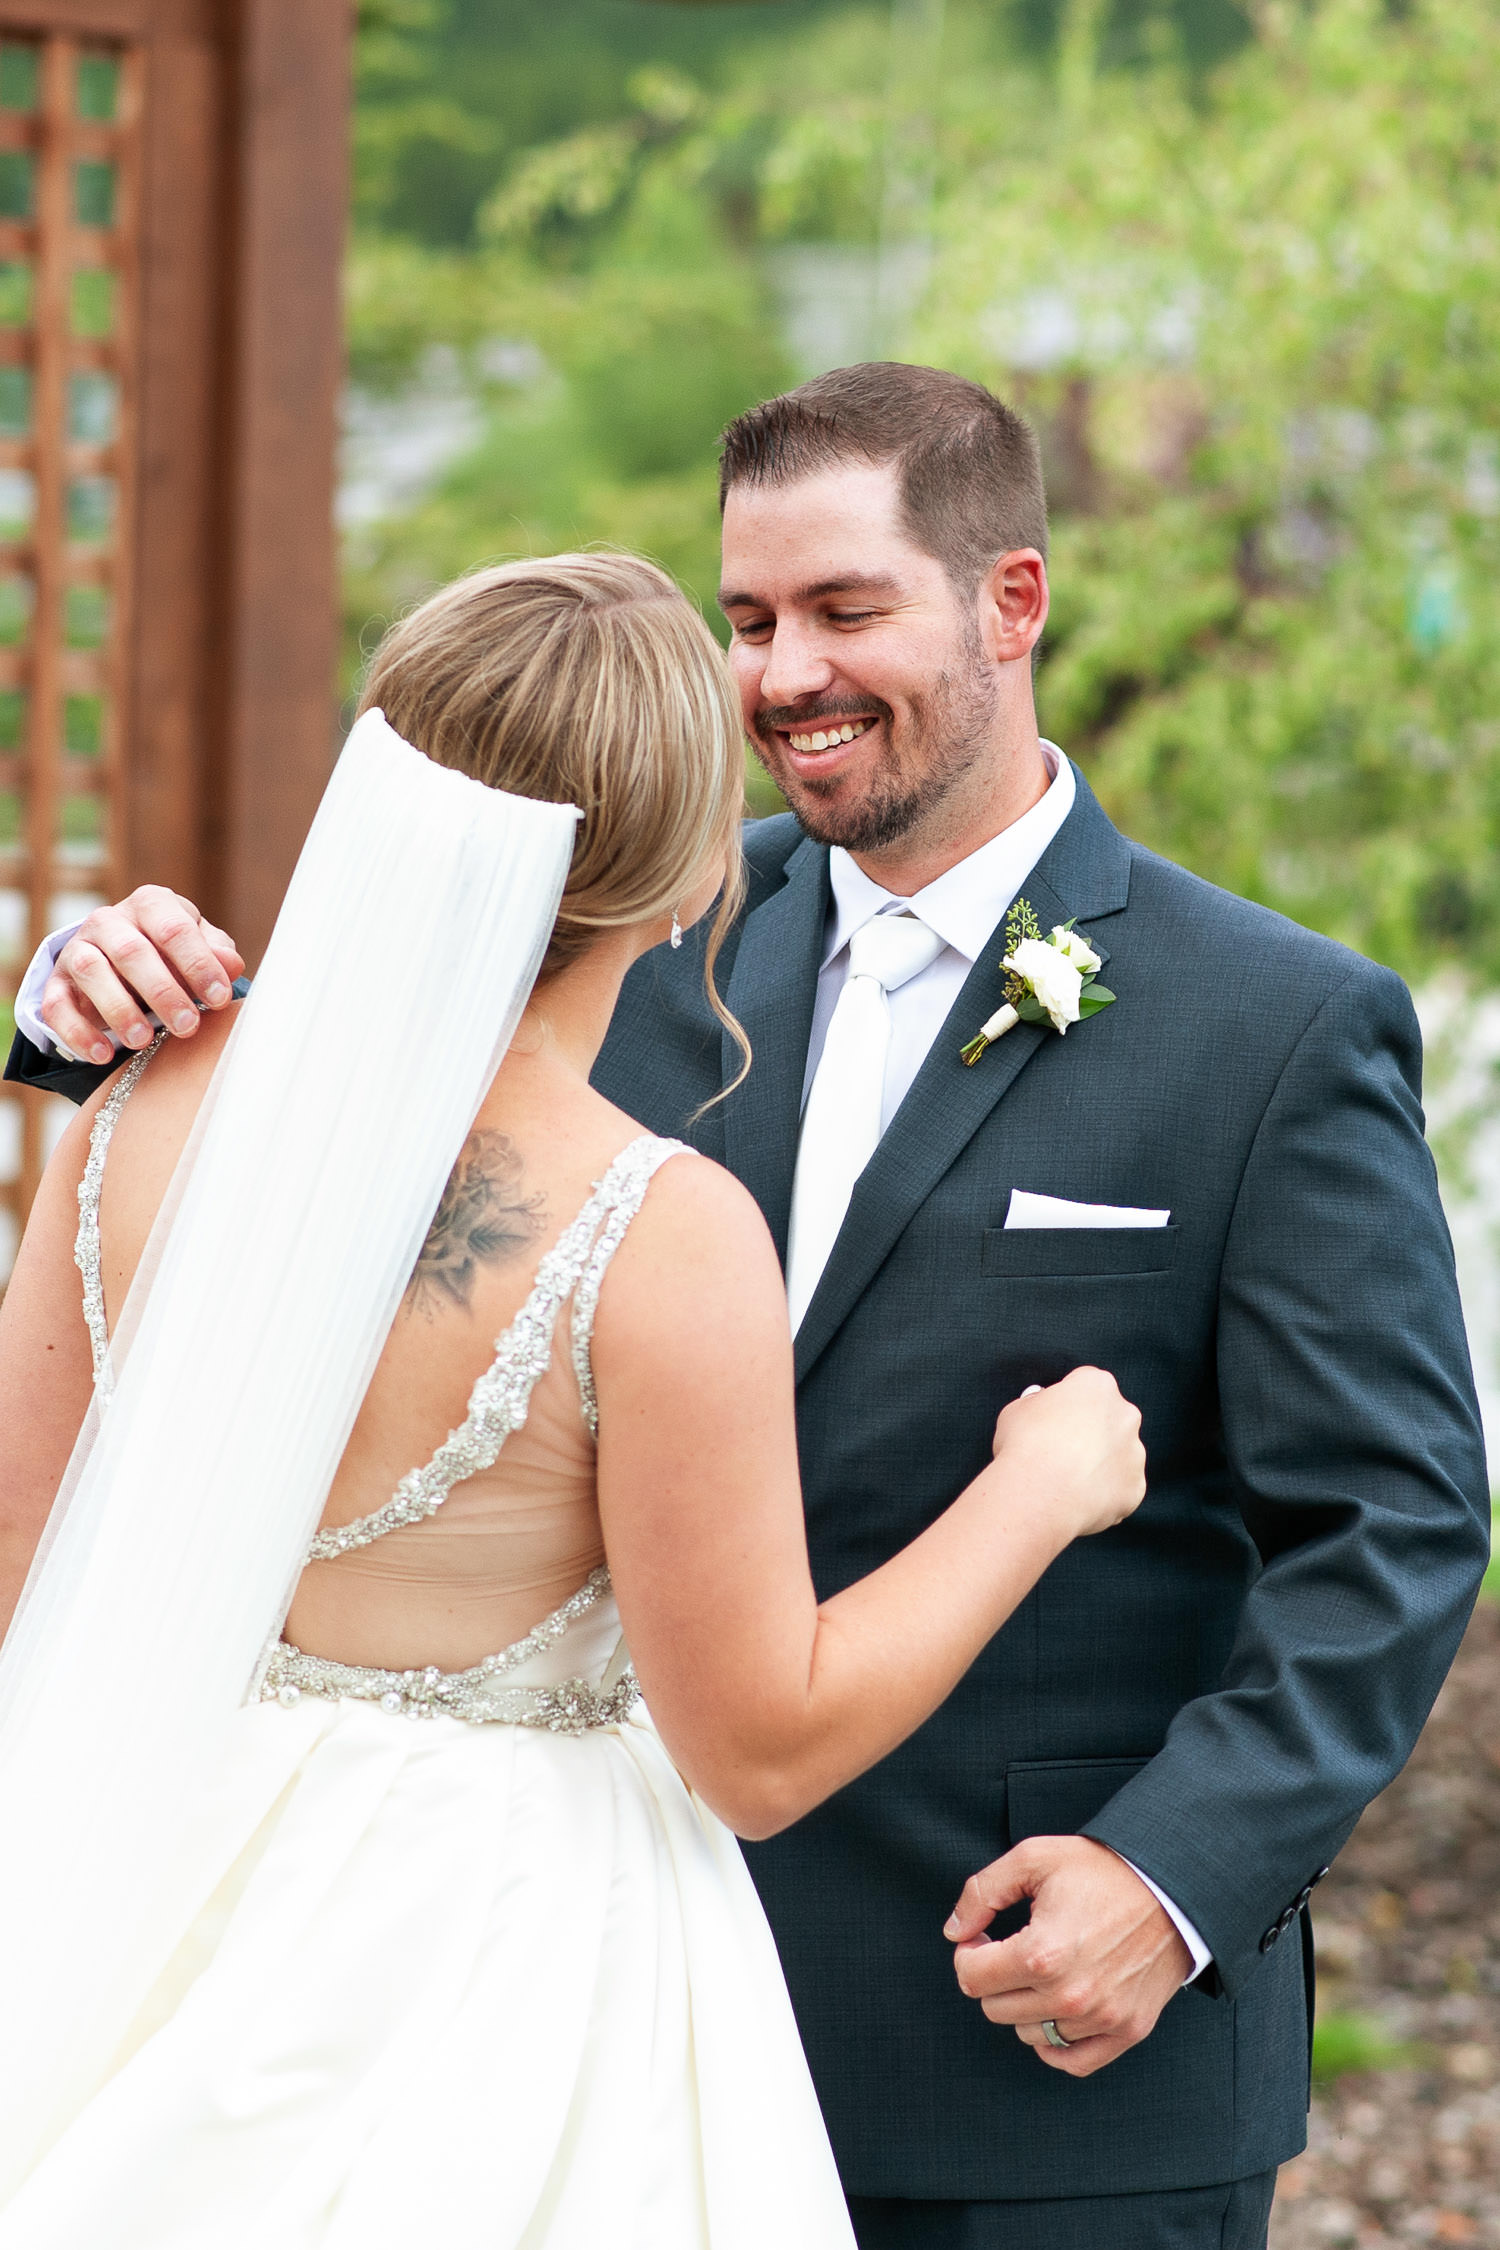 Just married during a Creekside Villa wedding captured by Tara Whittaker Photography